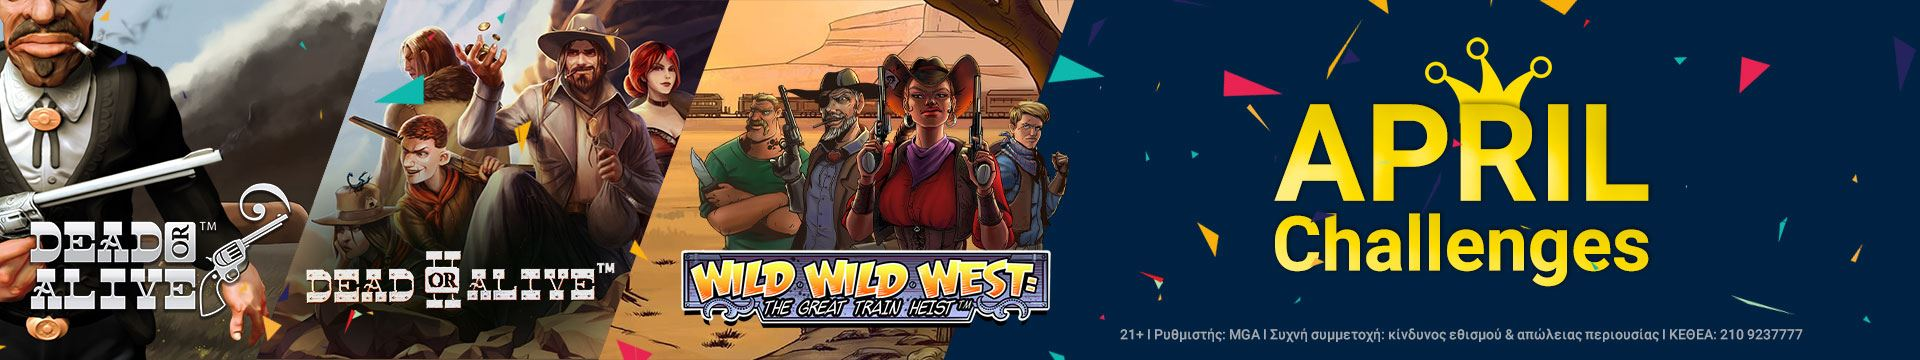 April_Day7_Wild_West